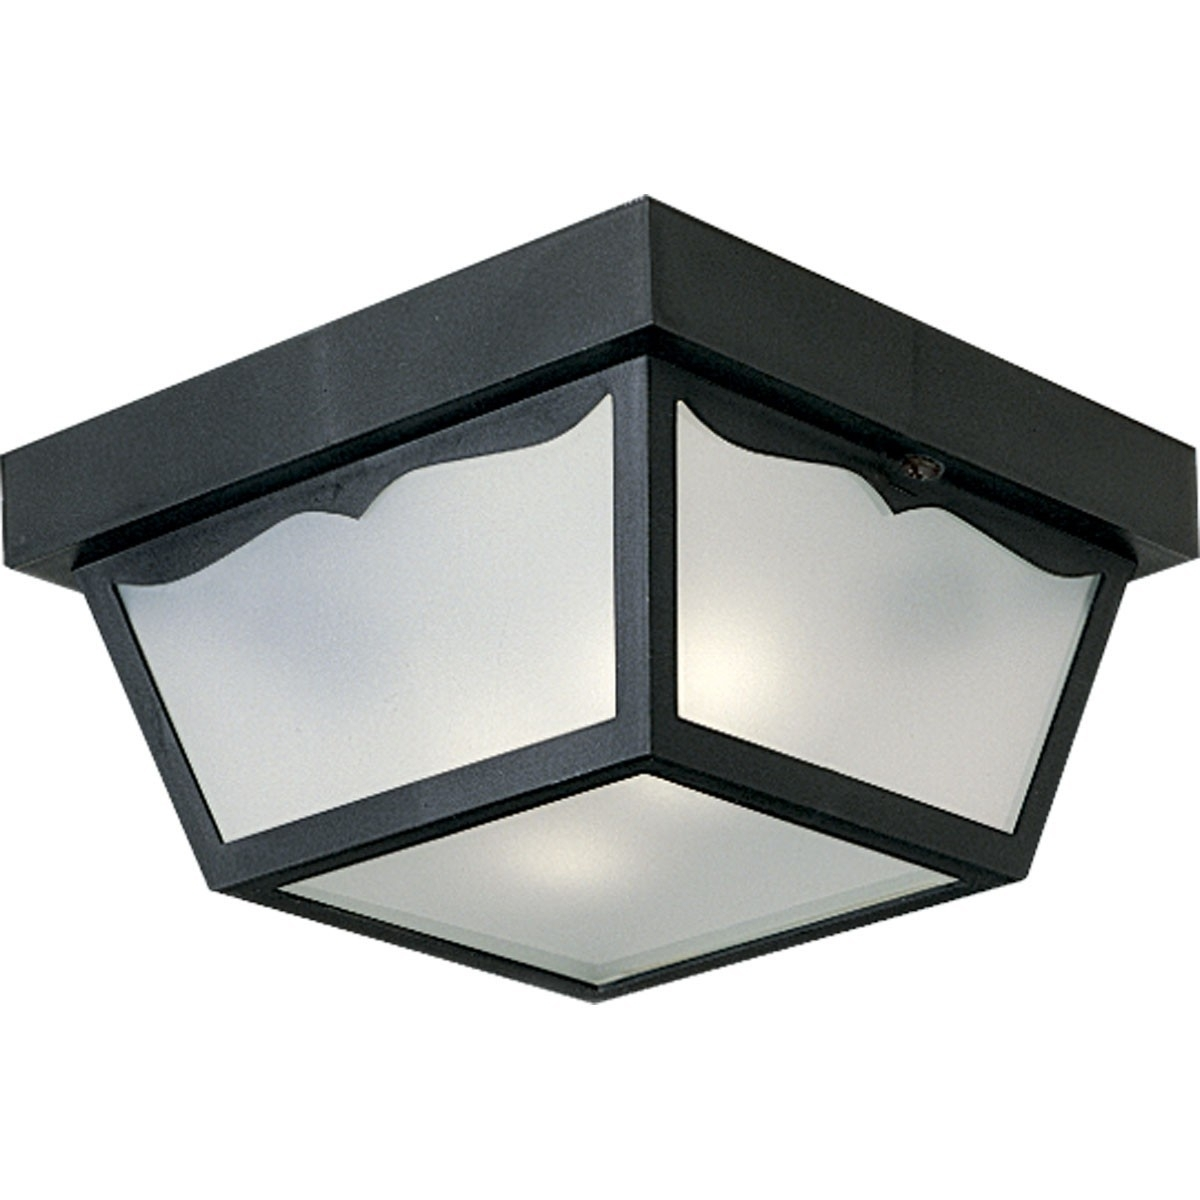 Inspiration about 60W Outdoor Flush Mount Non Metallic Ceiling Light – Progress Within Unique Outdoor Ceiling Lights (#3 of 15)